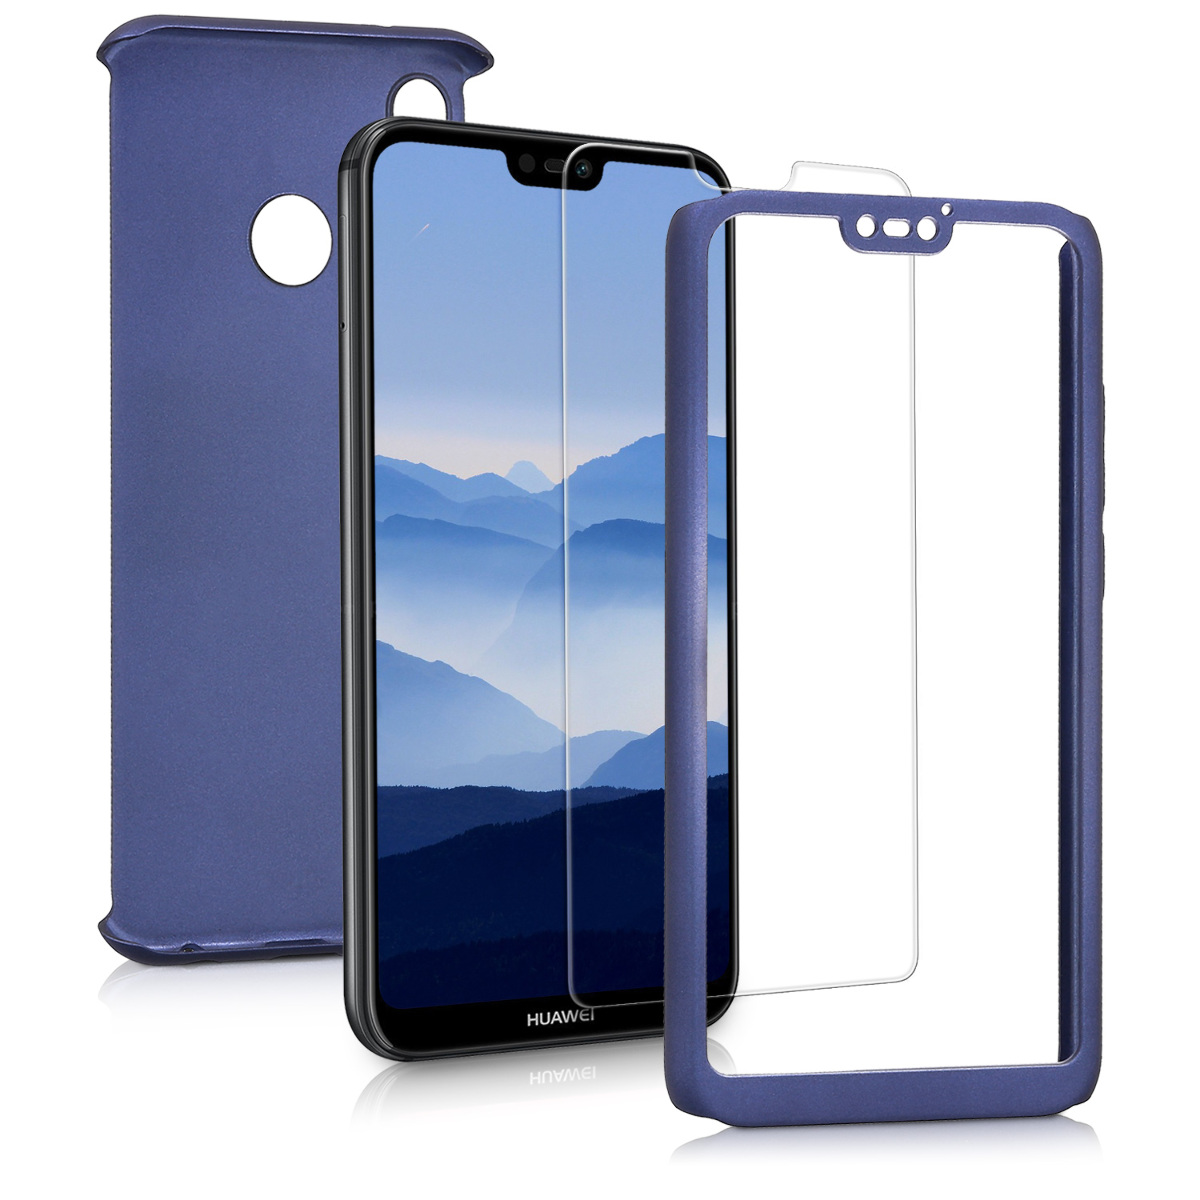 KW Θήκη Full Body για Huawei P20 Lite & Tempered Glass - Metallic Blue (44888.64)